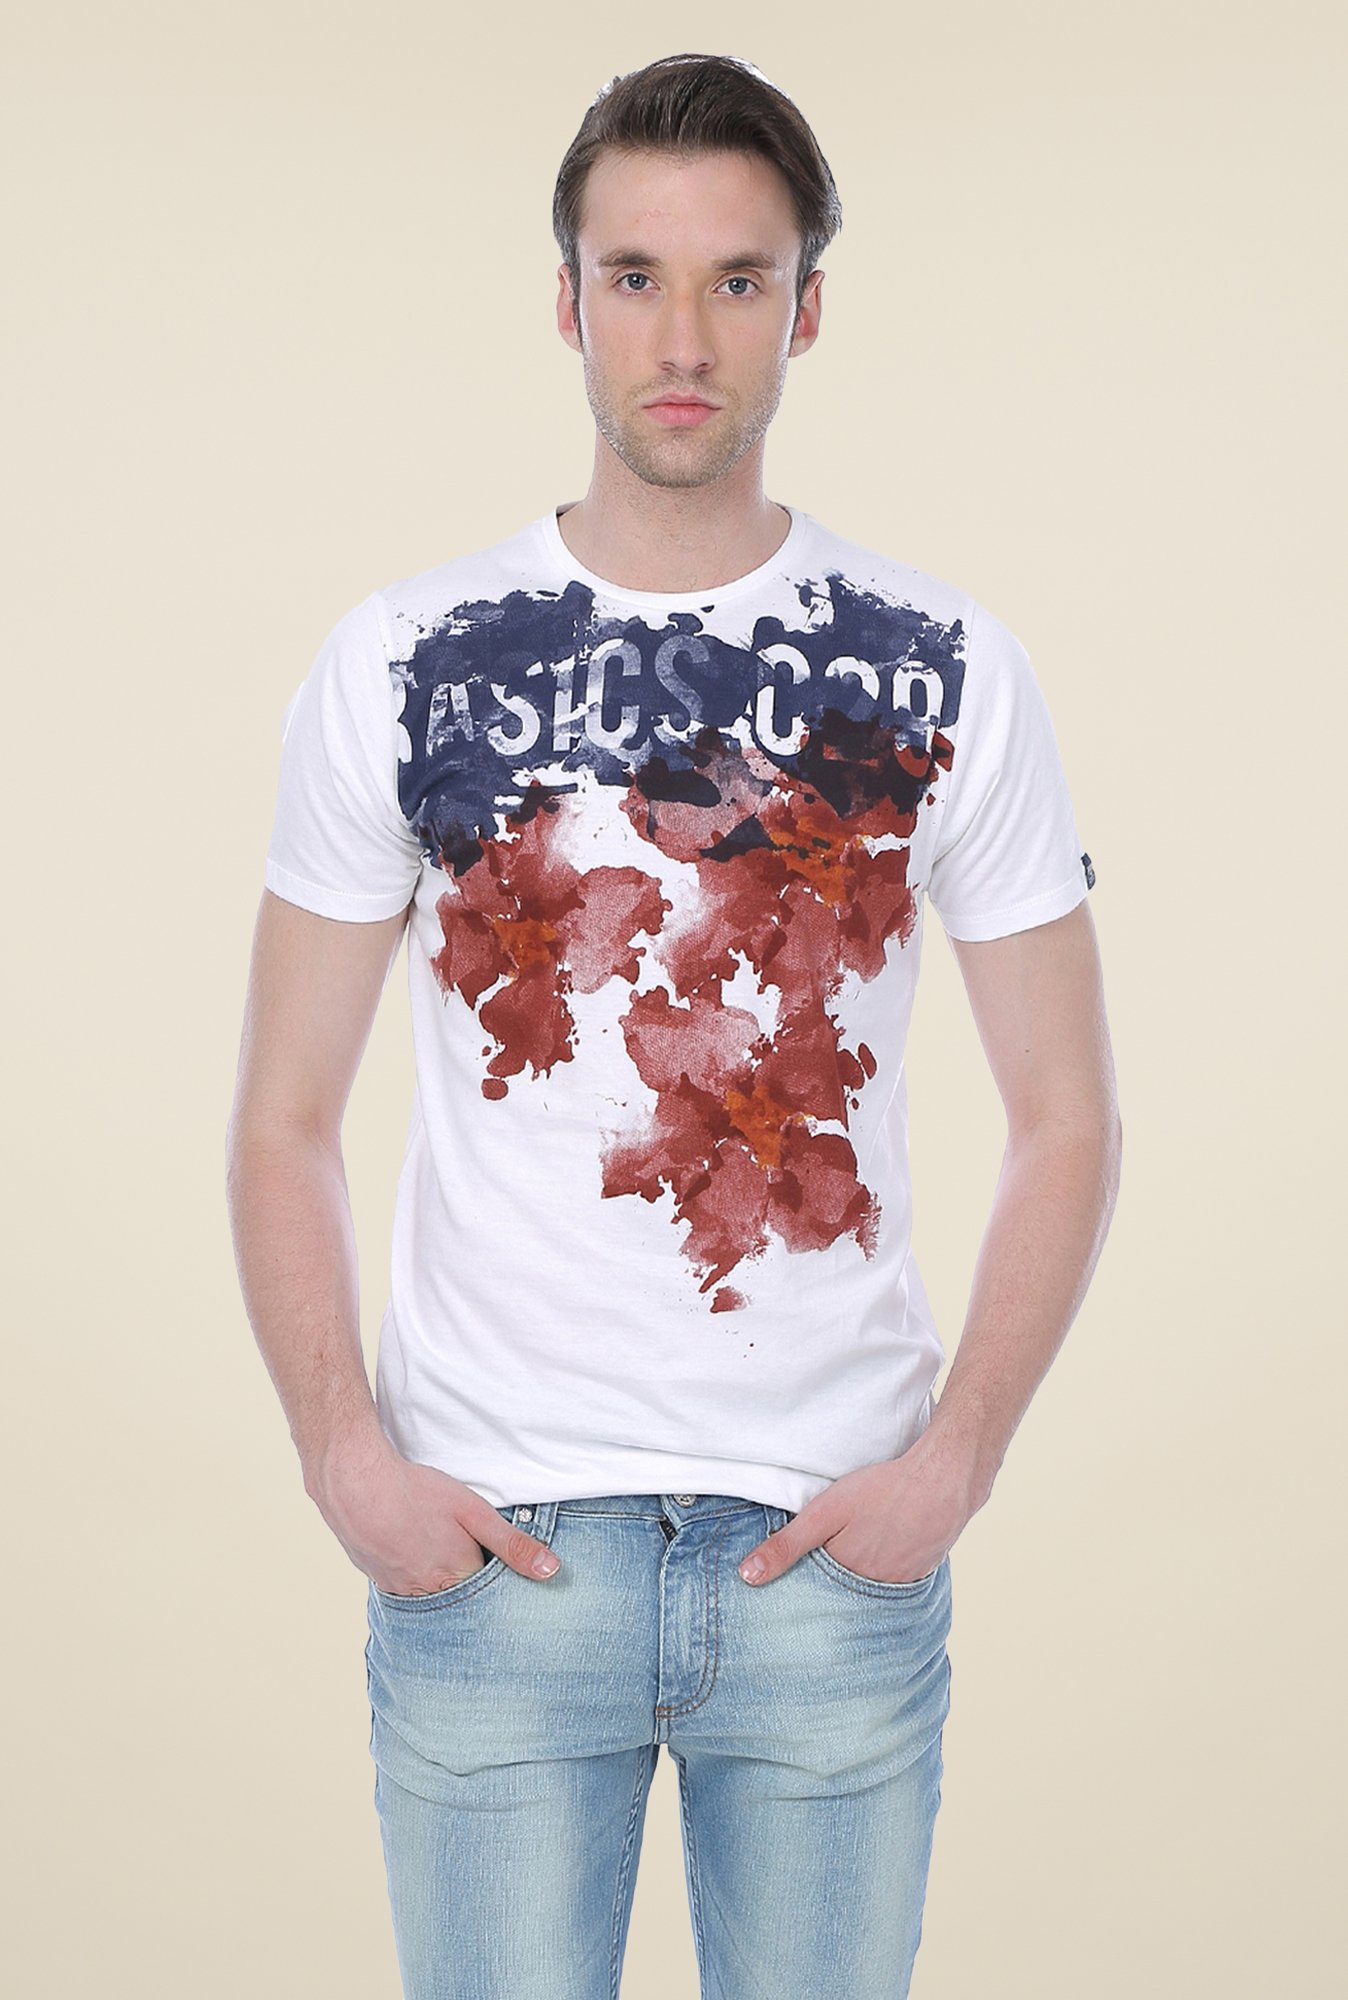 Basics White Printed Cotton Crew T-shirt